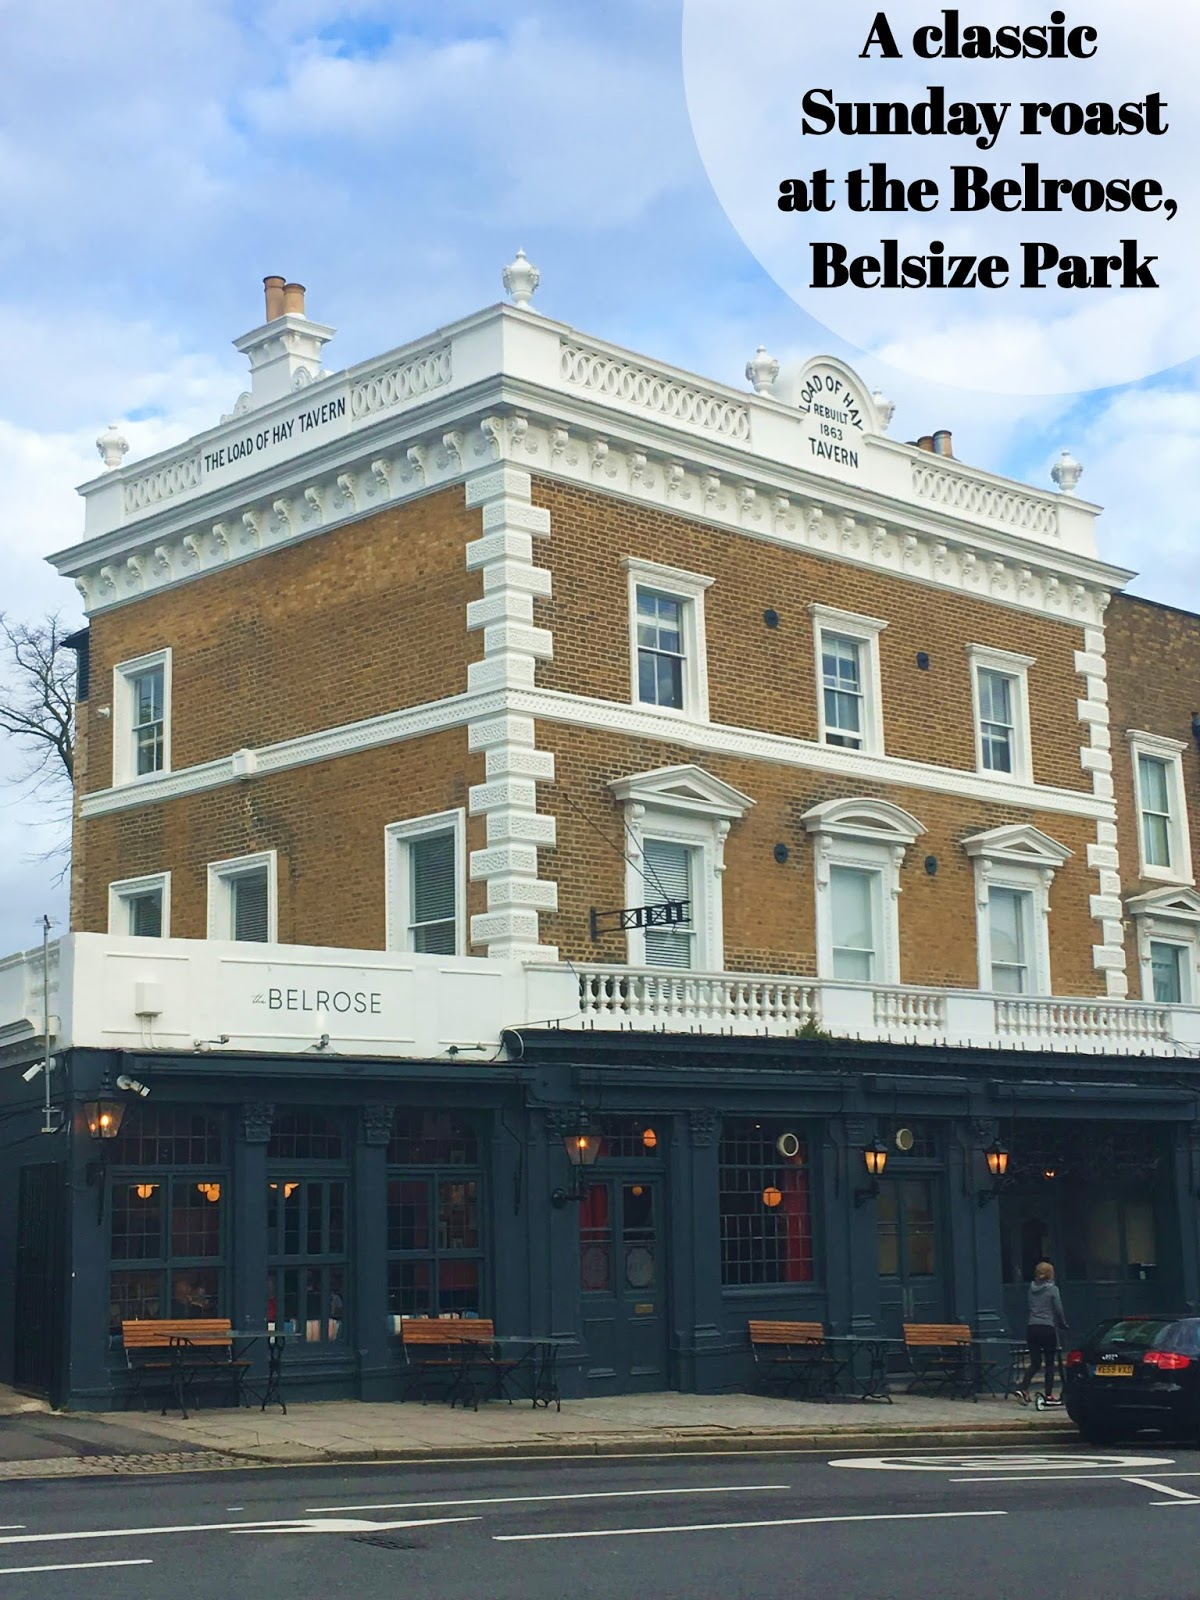 Classic Sunday Roast at the Belrose, Belsize Park